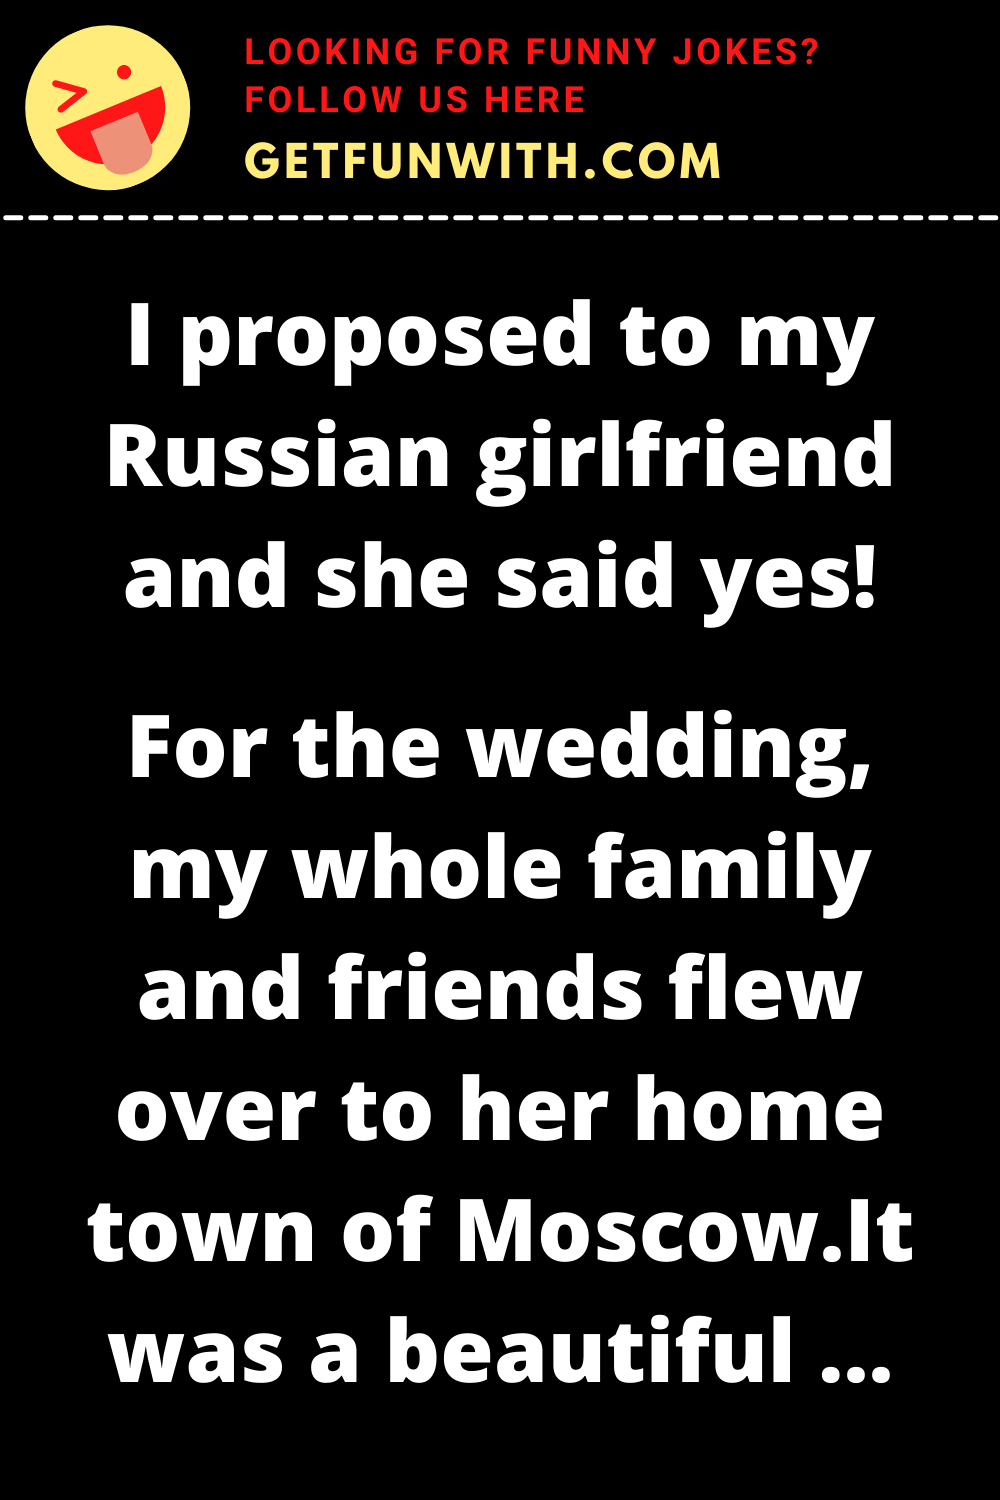 I proposed to my Russian girlfriend and she said yes!